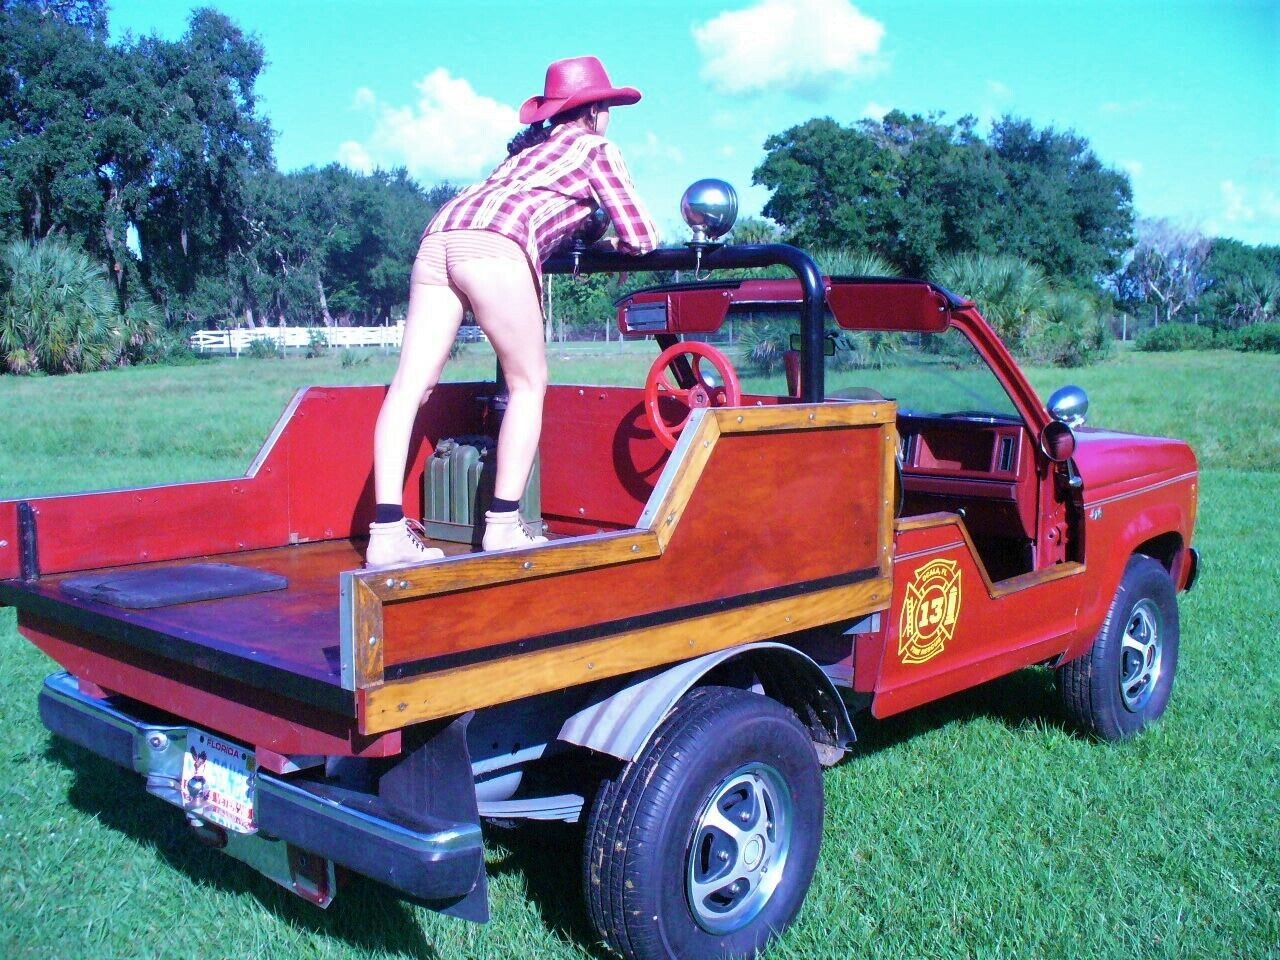 1985 Ford bronco fire rescue show truck  LOW MILAGE 52.000